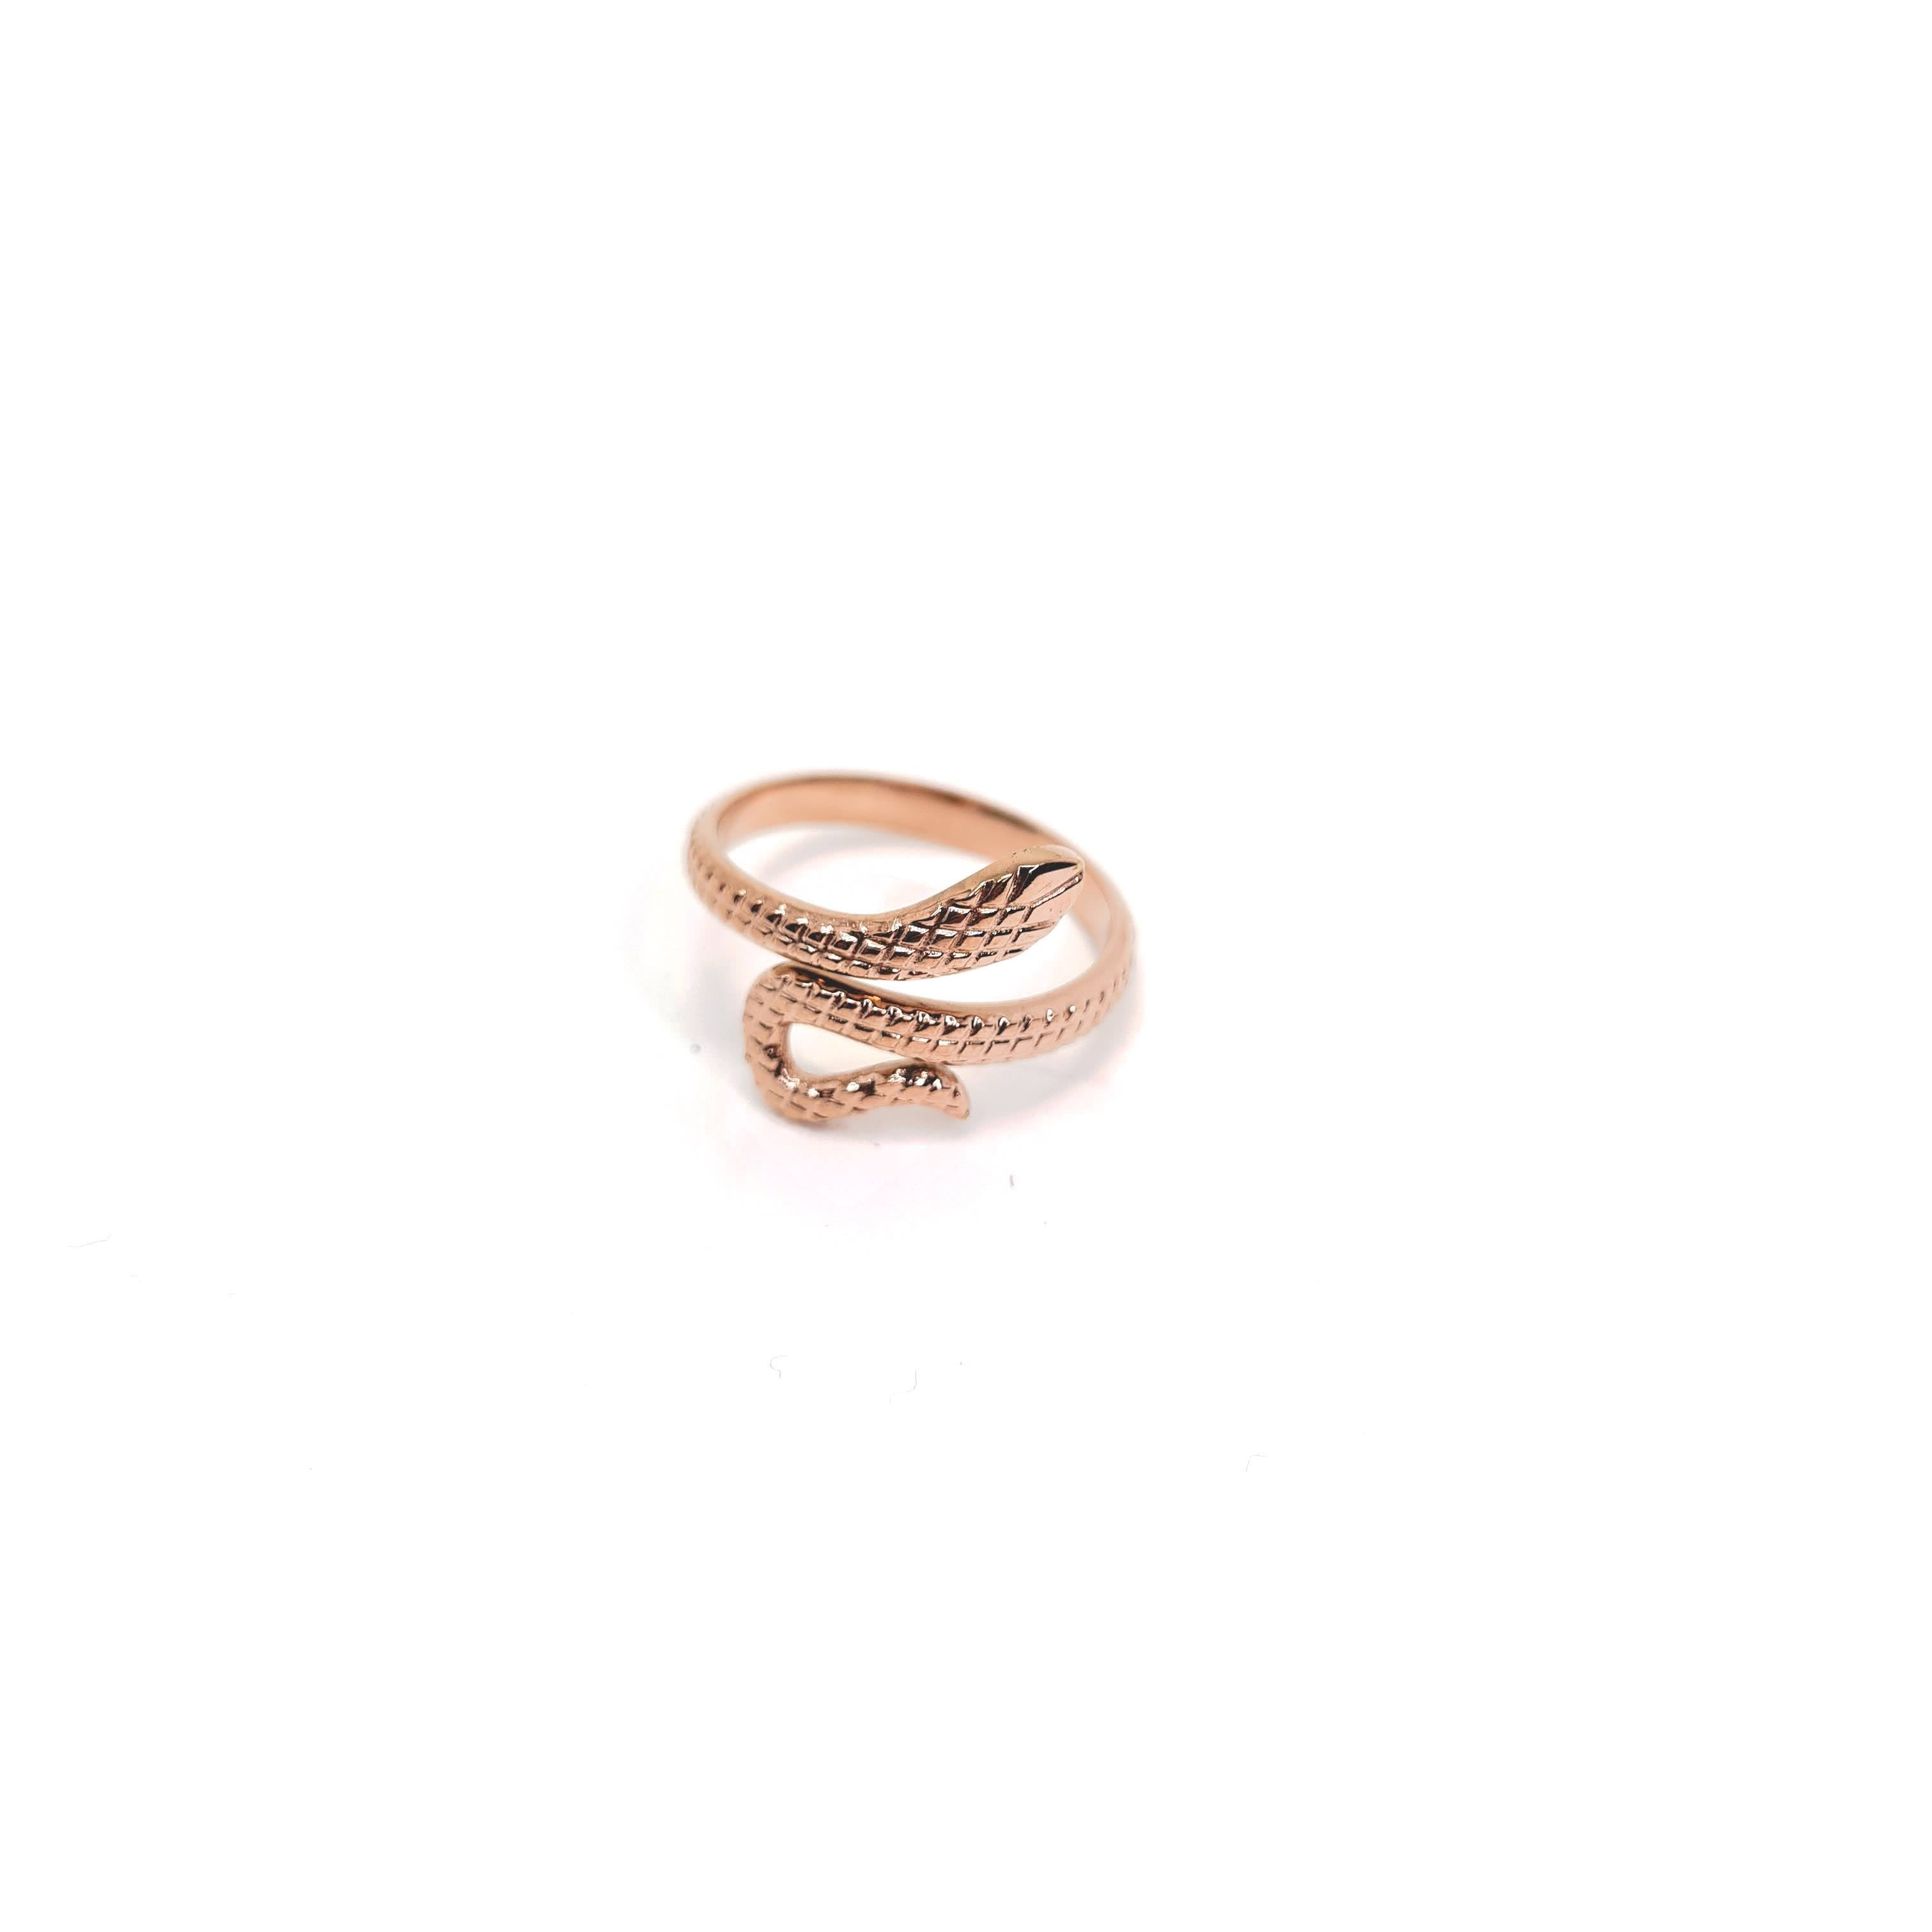 Stainless Steel Snake Ring